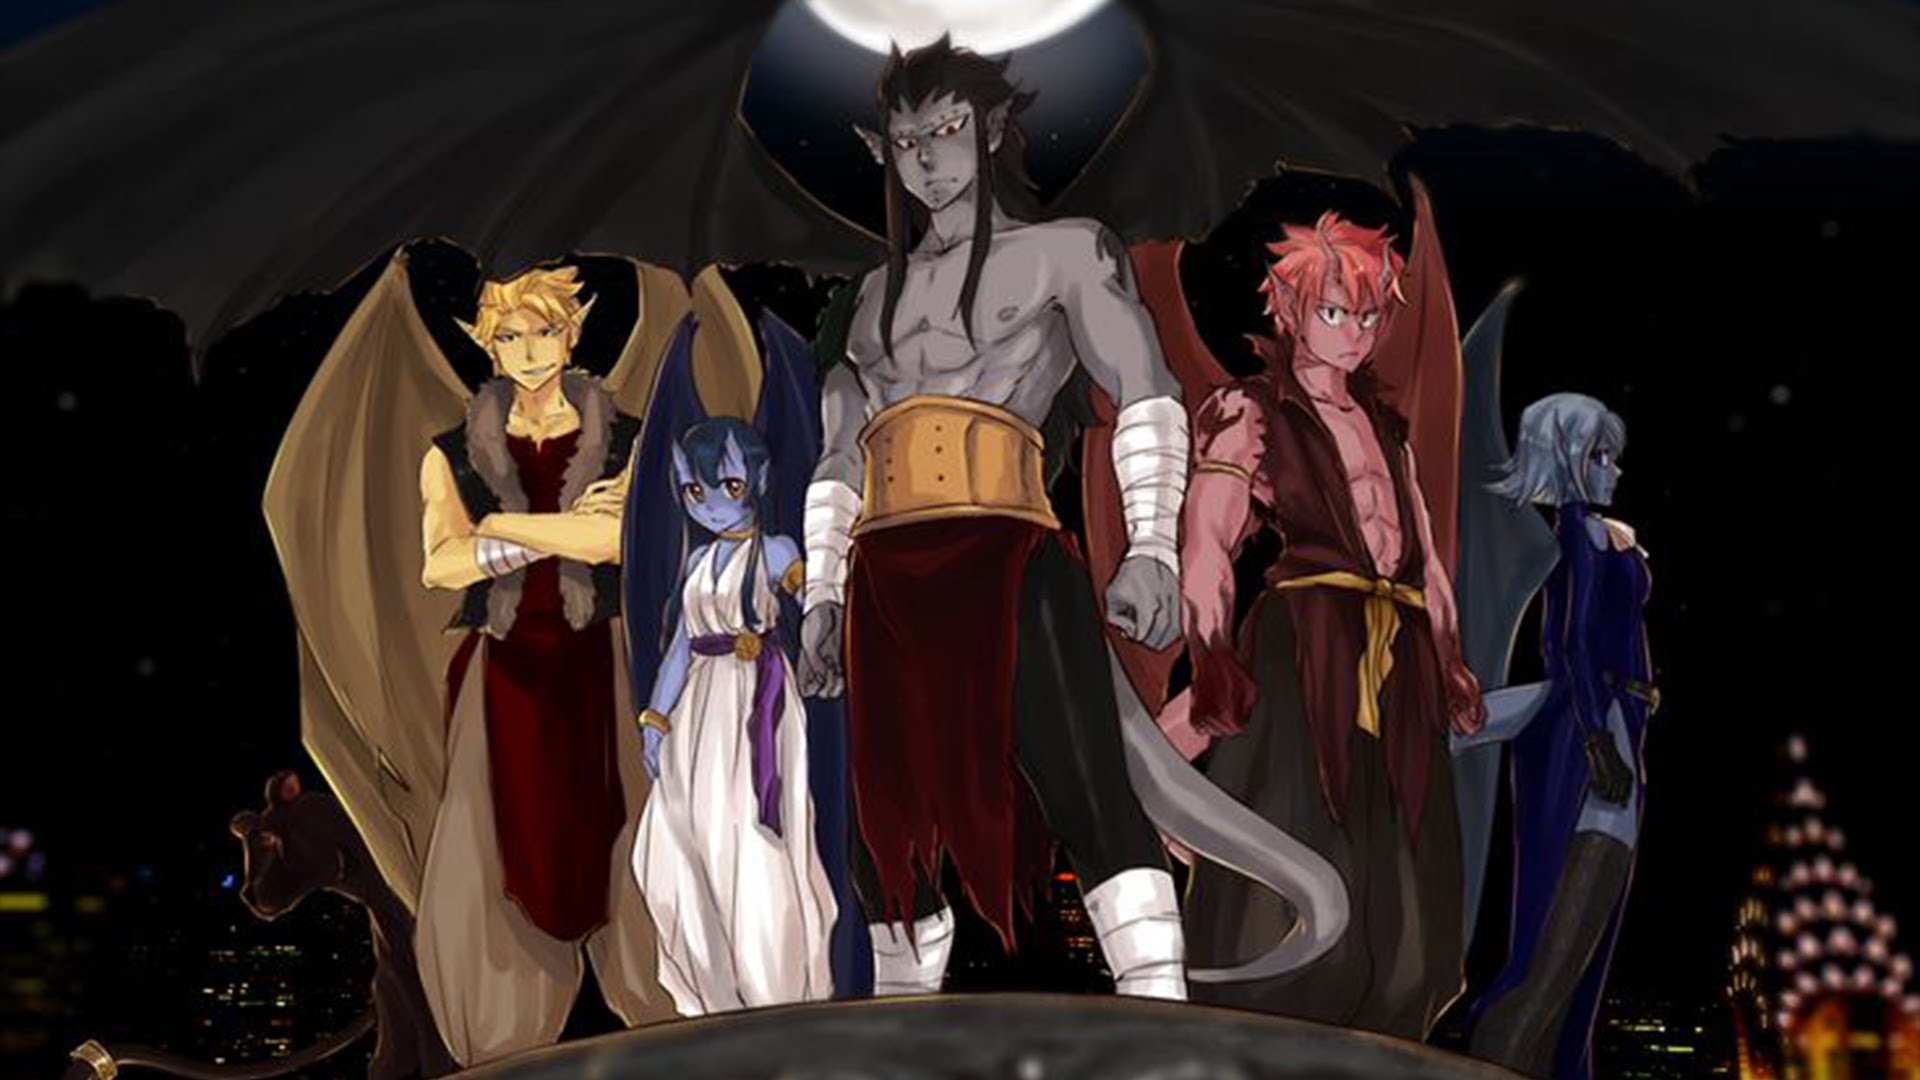 1920x1080 Fairy Tail 7 Dragon Slayer Wallpapers Images